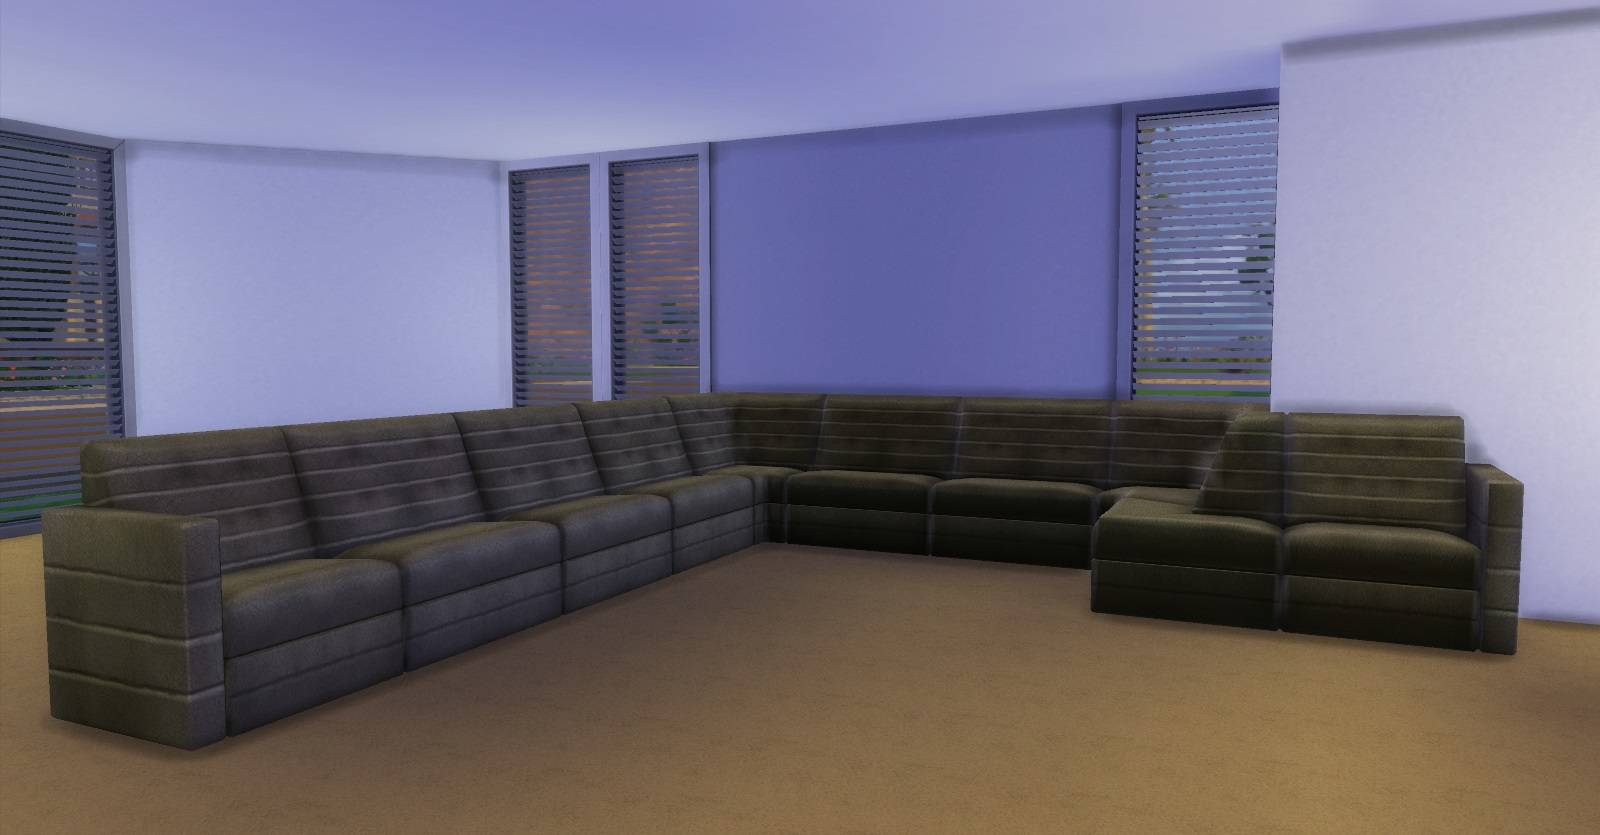 Mod The Sims - Sectional Living with Mod Sofas (Image 10 of 30)